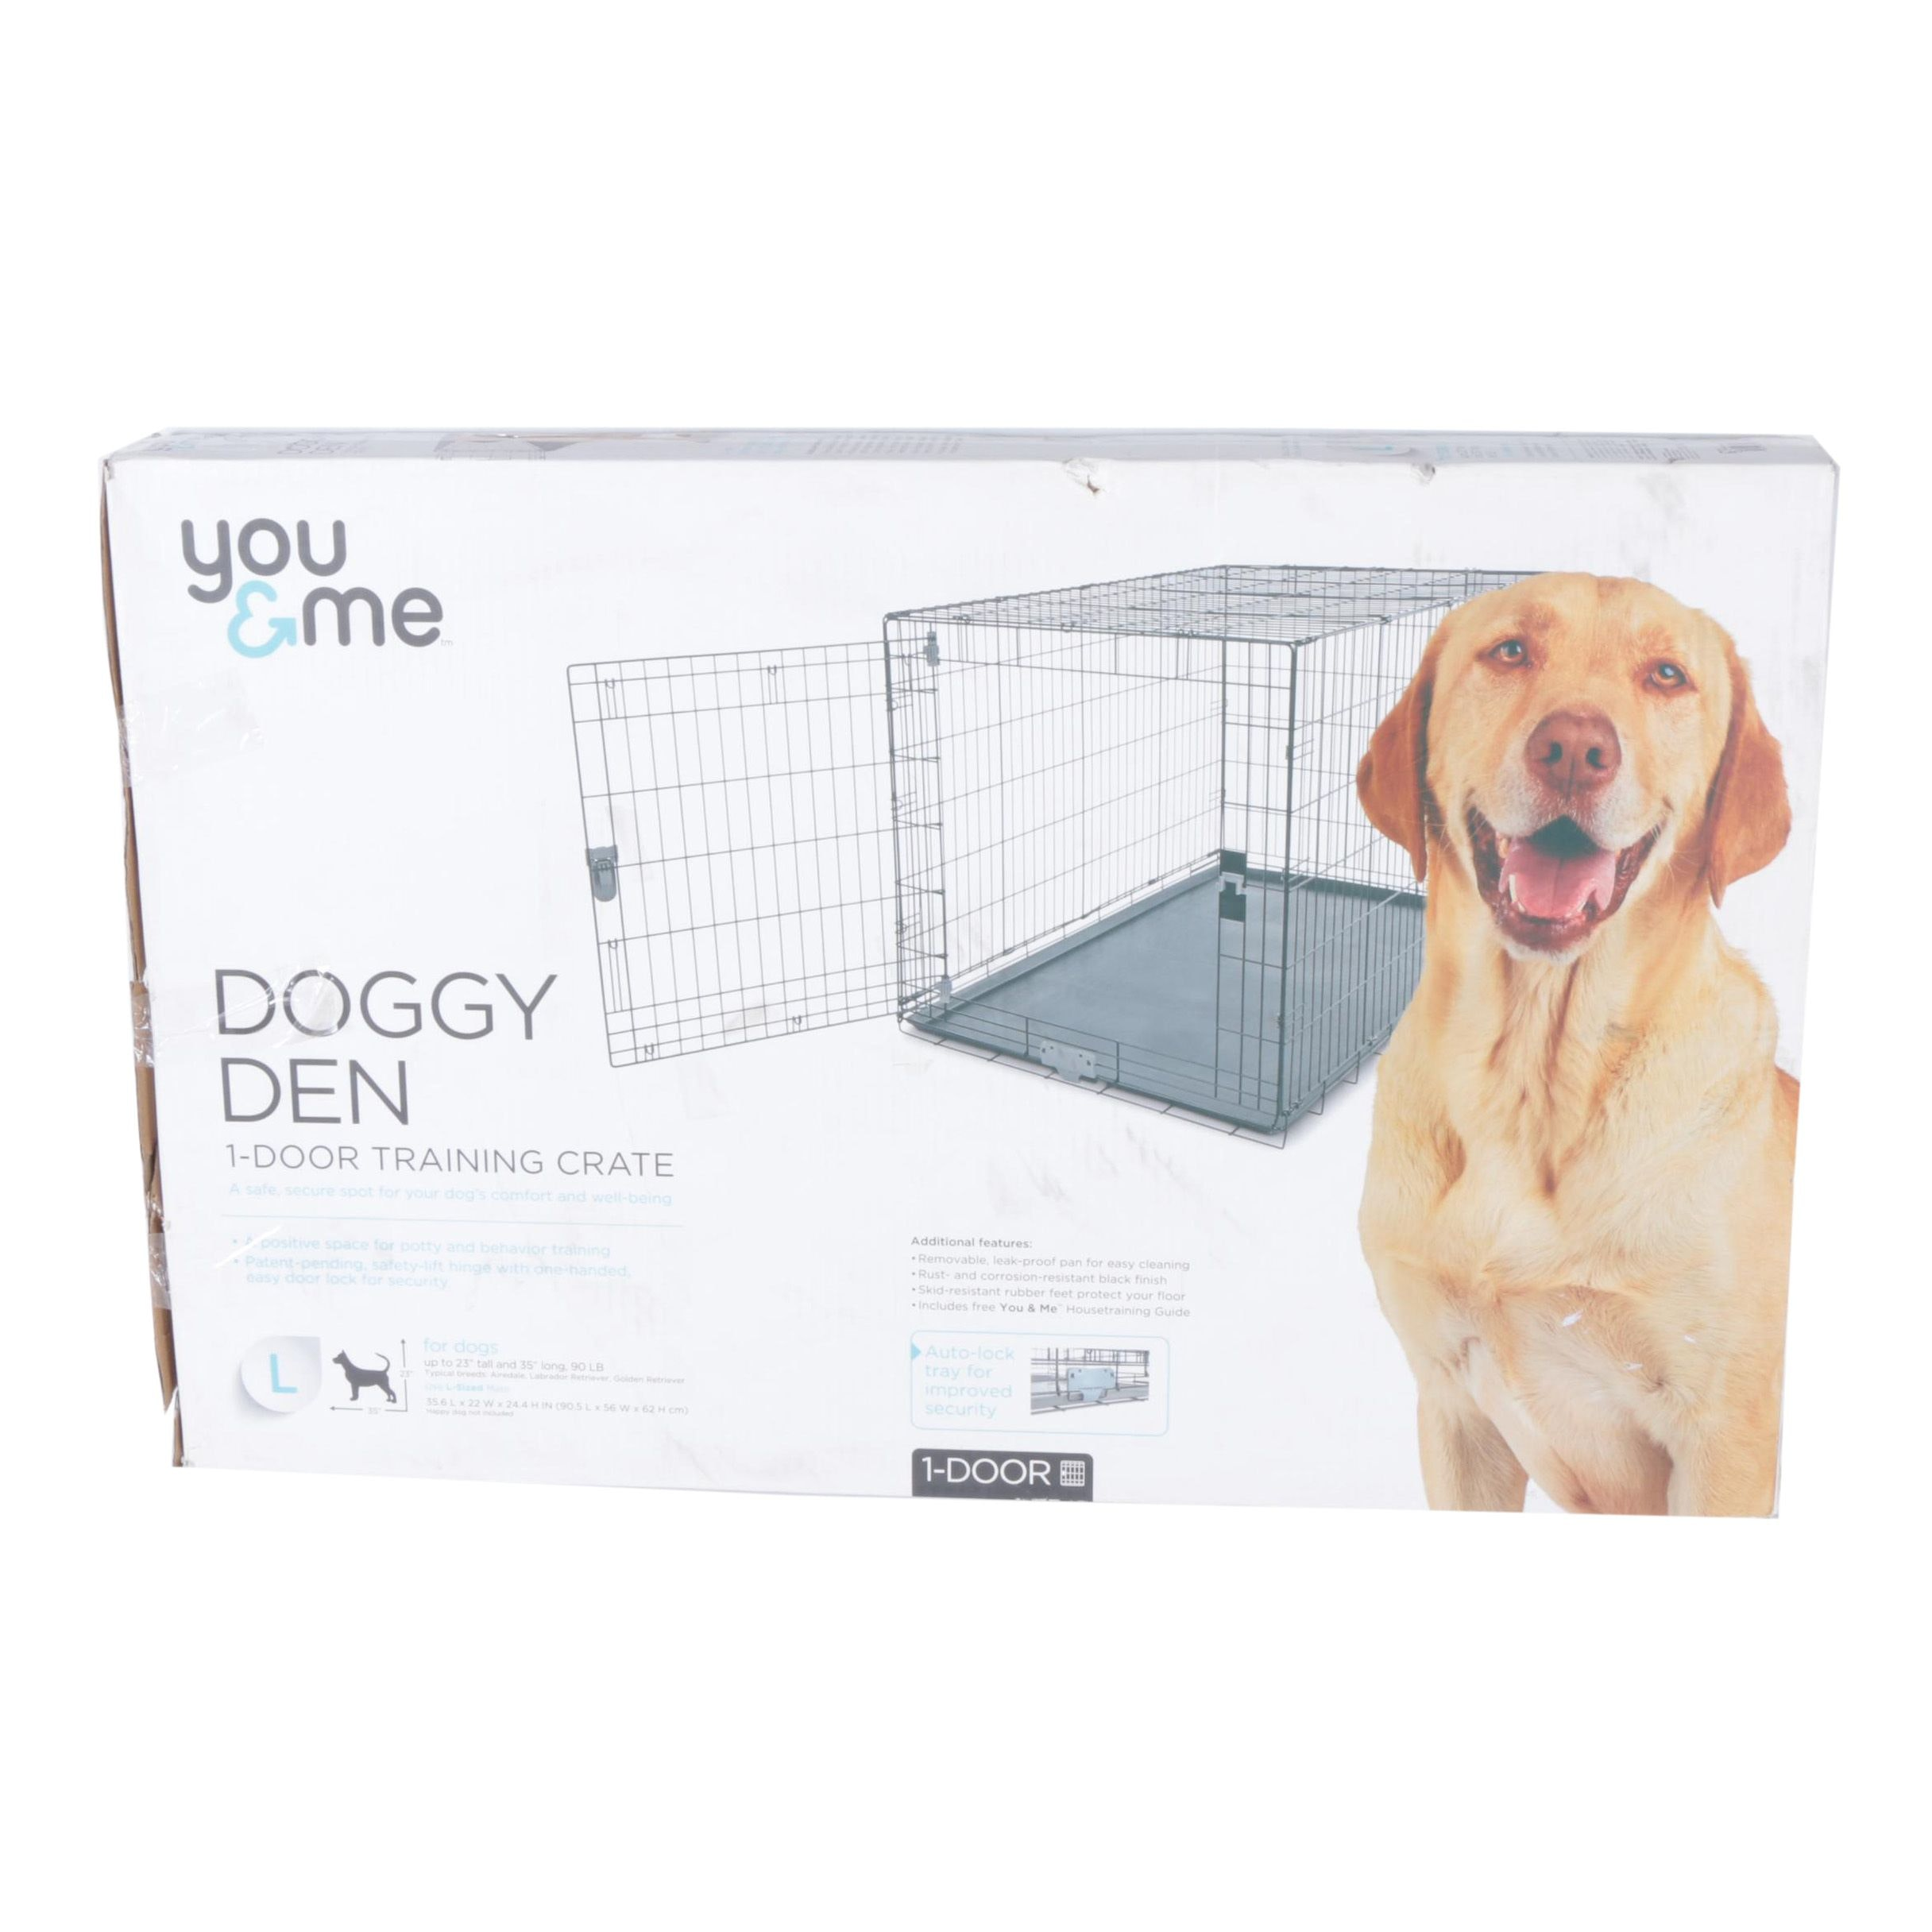 Doggy Den Cage by You & Me